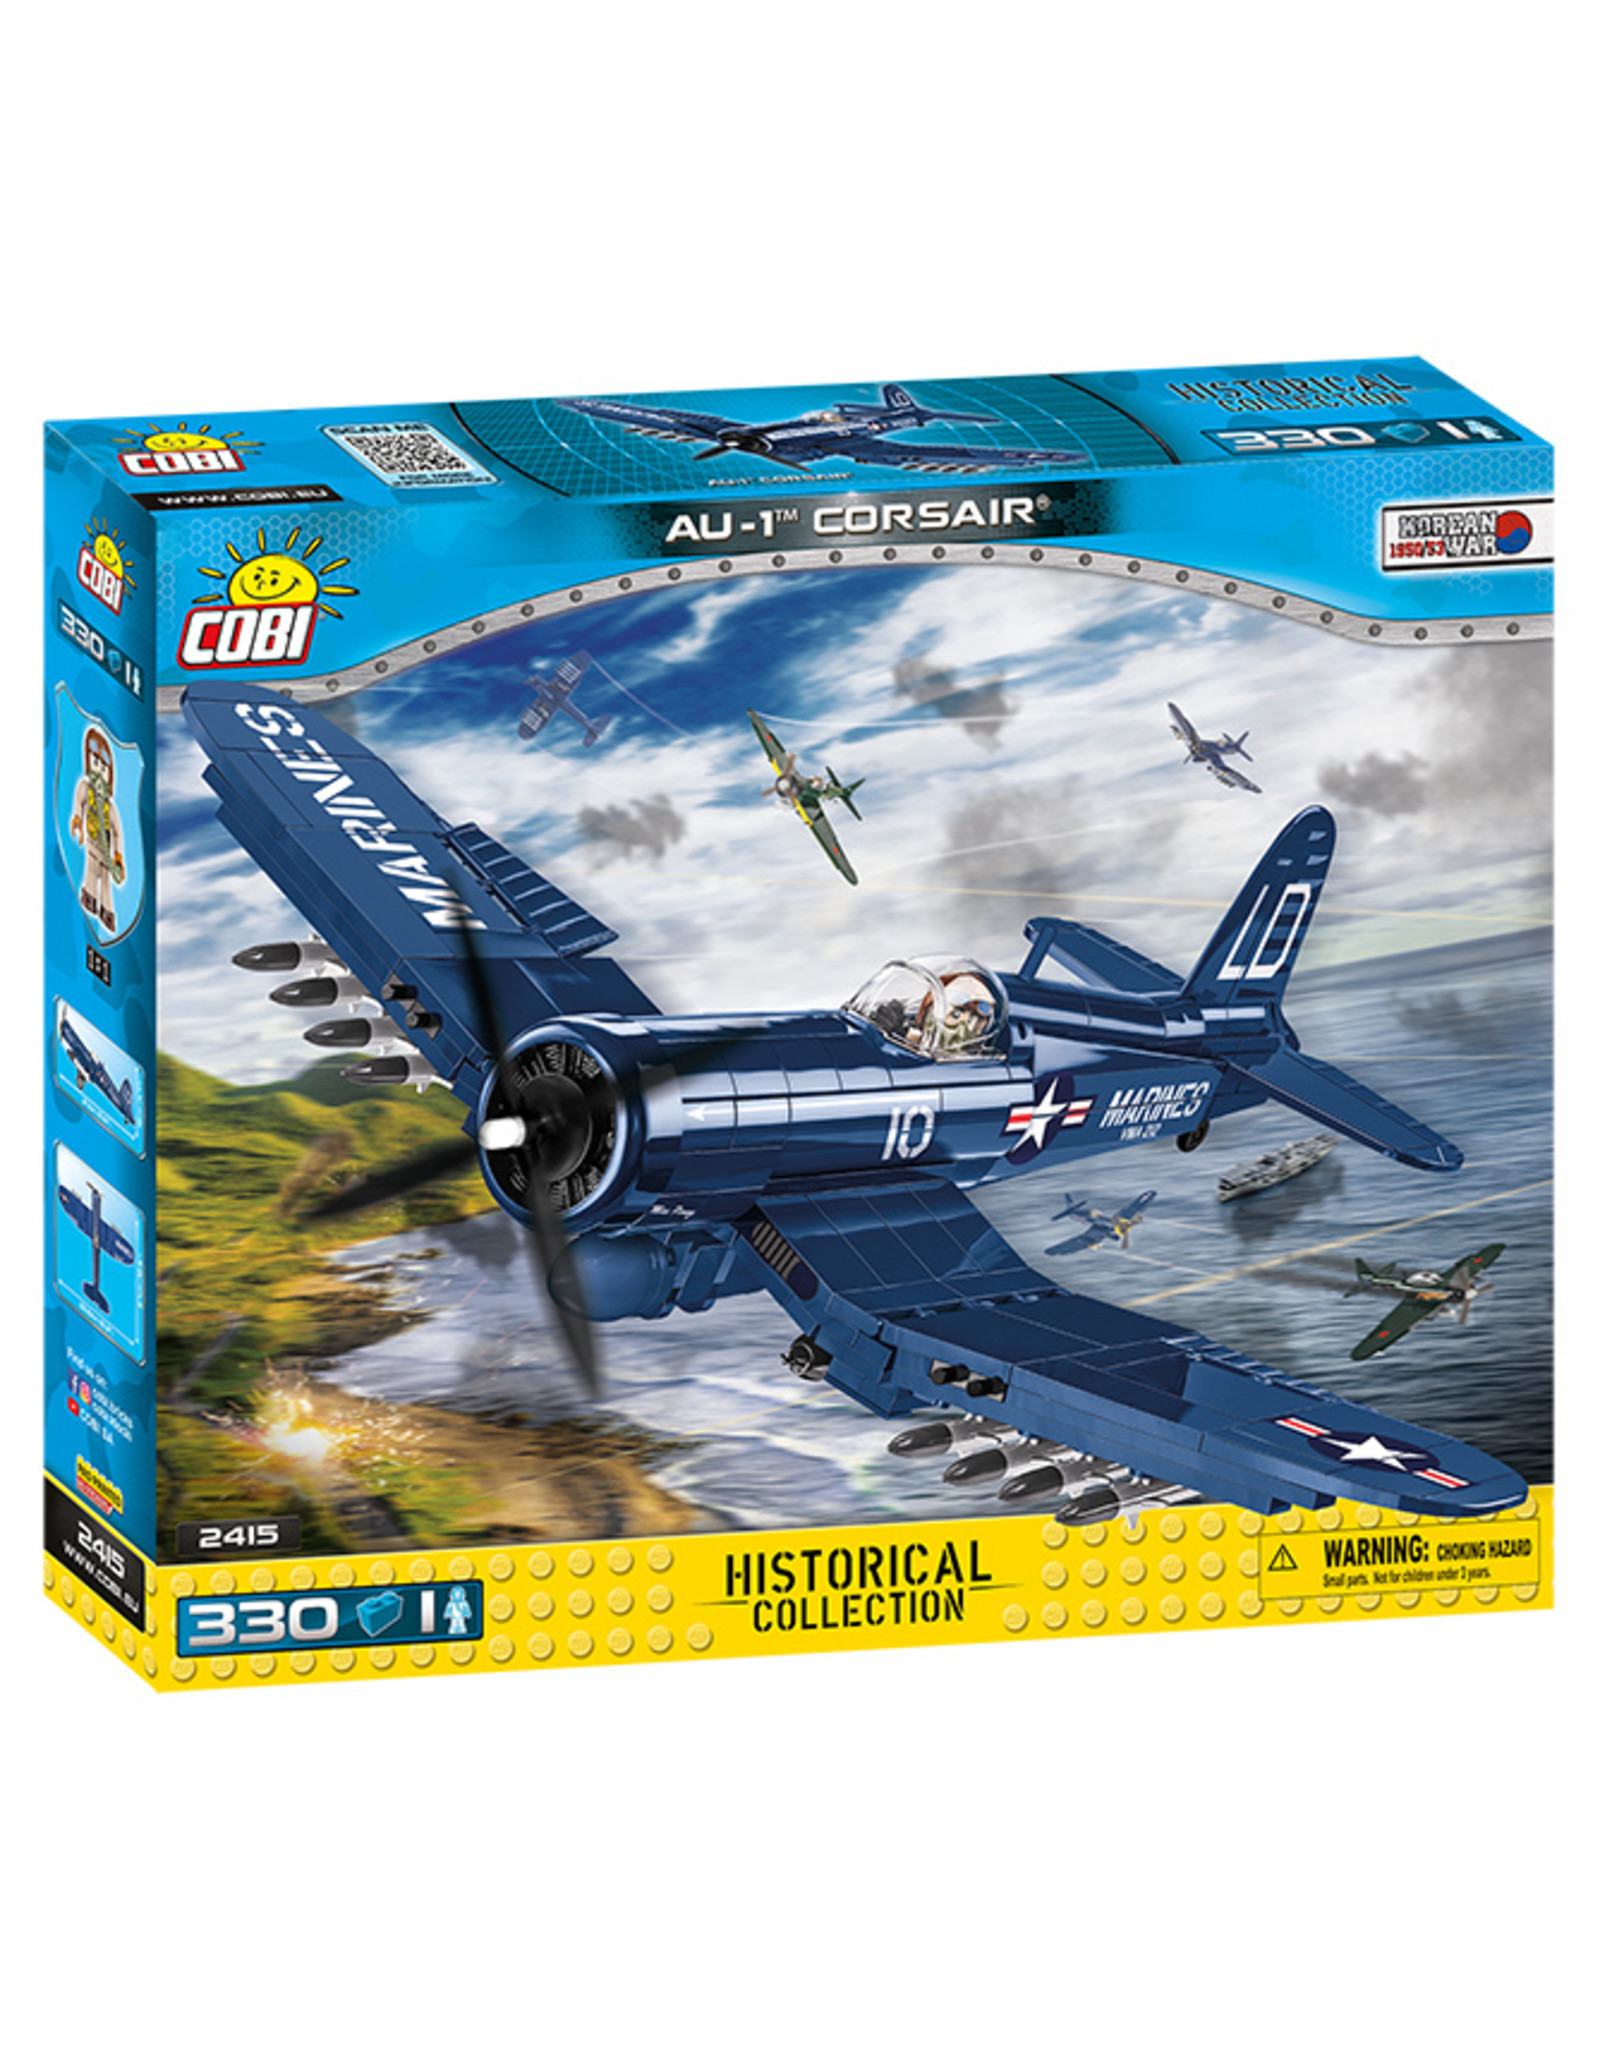 COBI TOYS #2415 Historical Collection Korean War Vought AU-1 Corsair NEW!